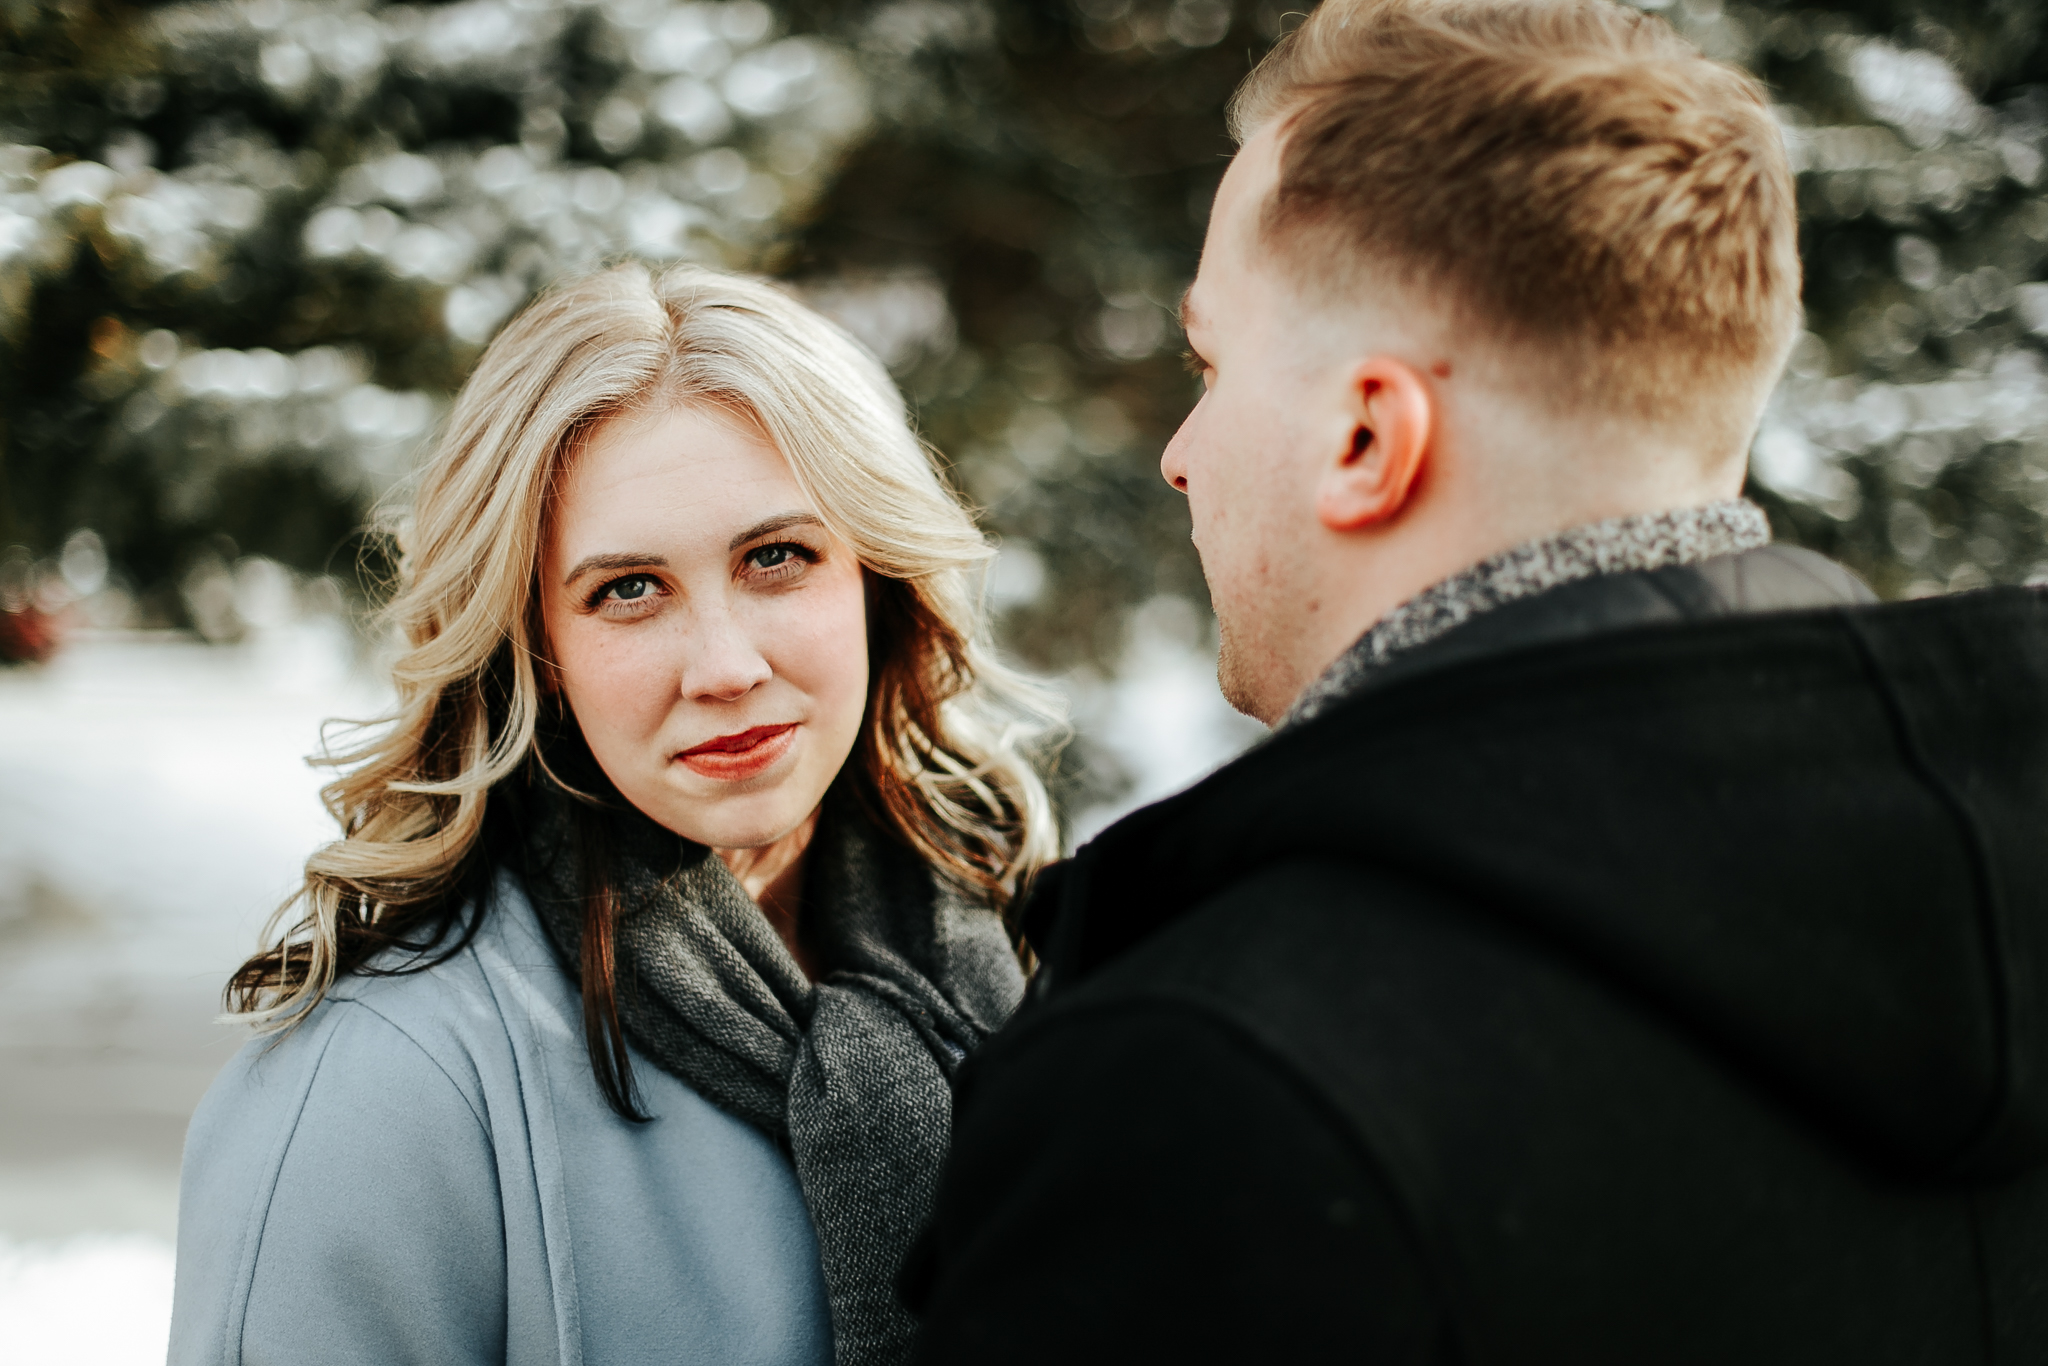 lethbridge-photographer-love-and-be-loved-photography-brandon-danielle-winter-engagement-downtown-yql-picture-image-photo-18.jpg